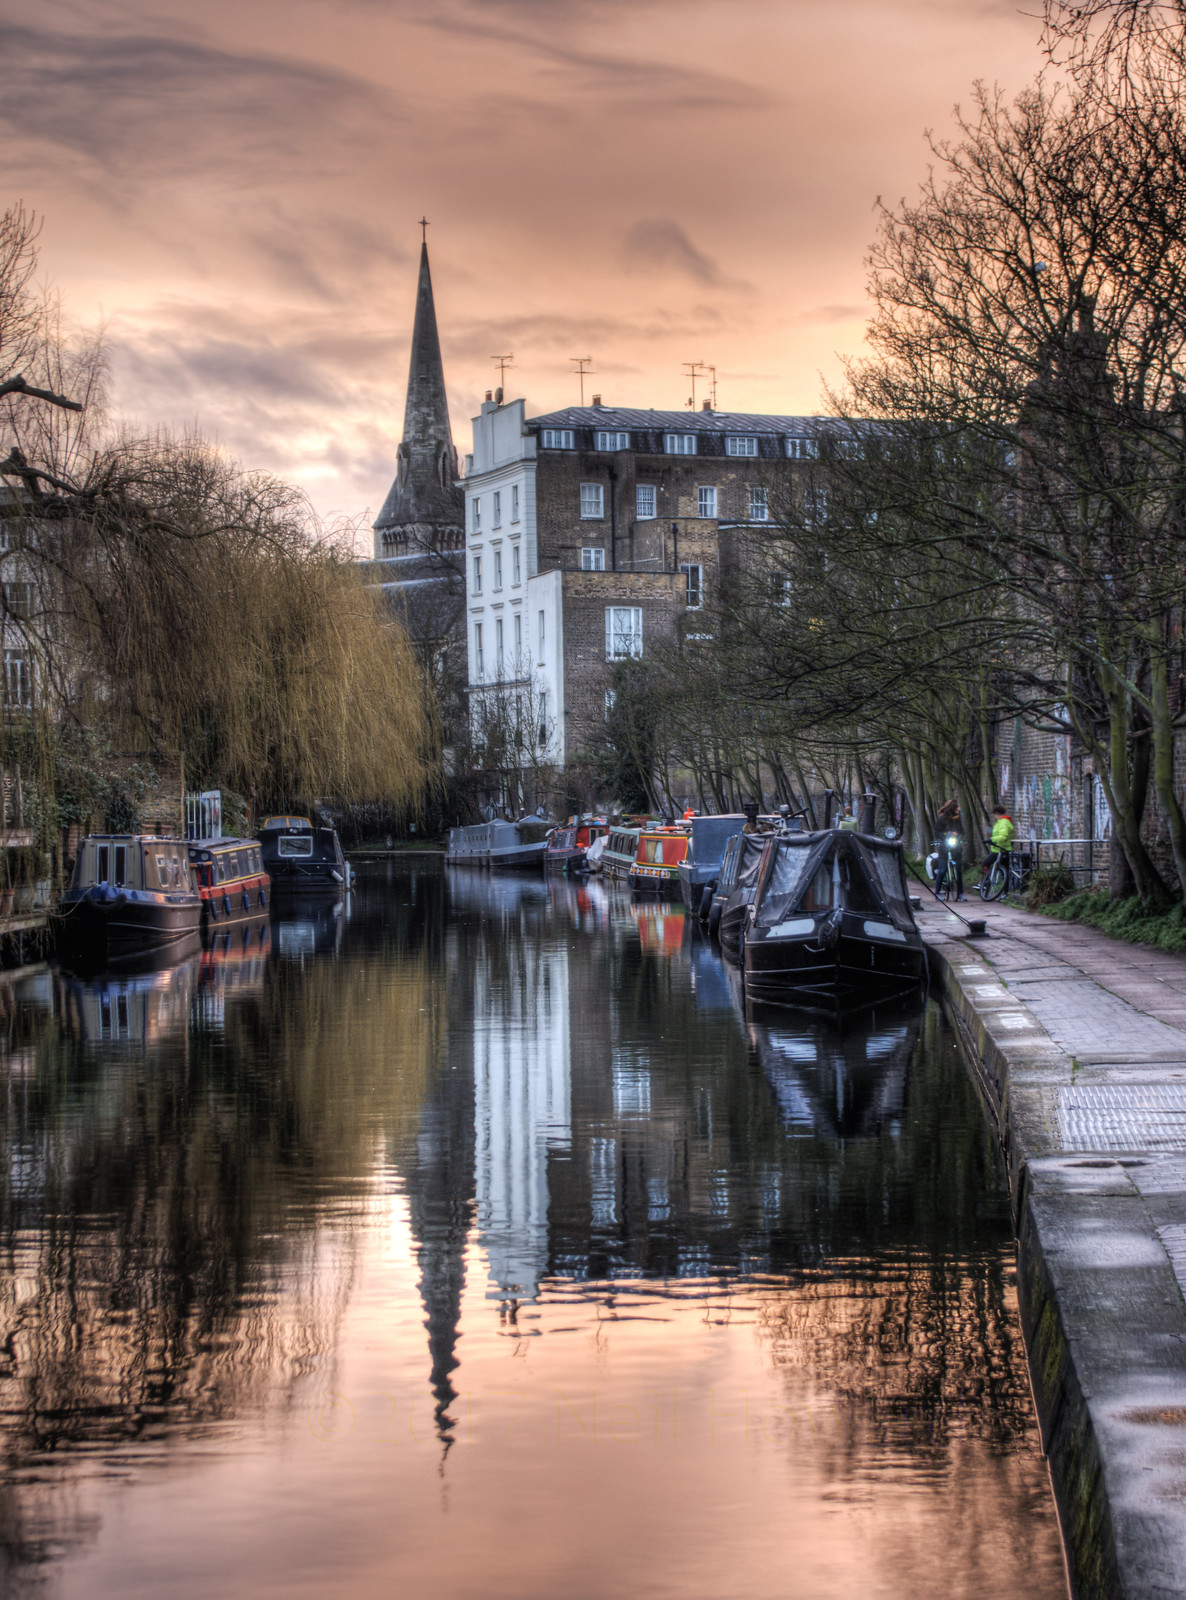 Sunset over the Regent's Canal in Camden, London. Credit Neil Howard, flickr